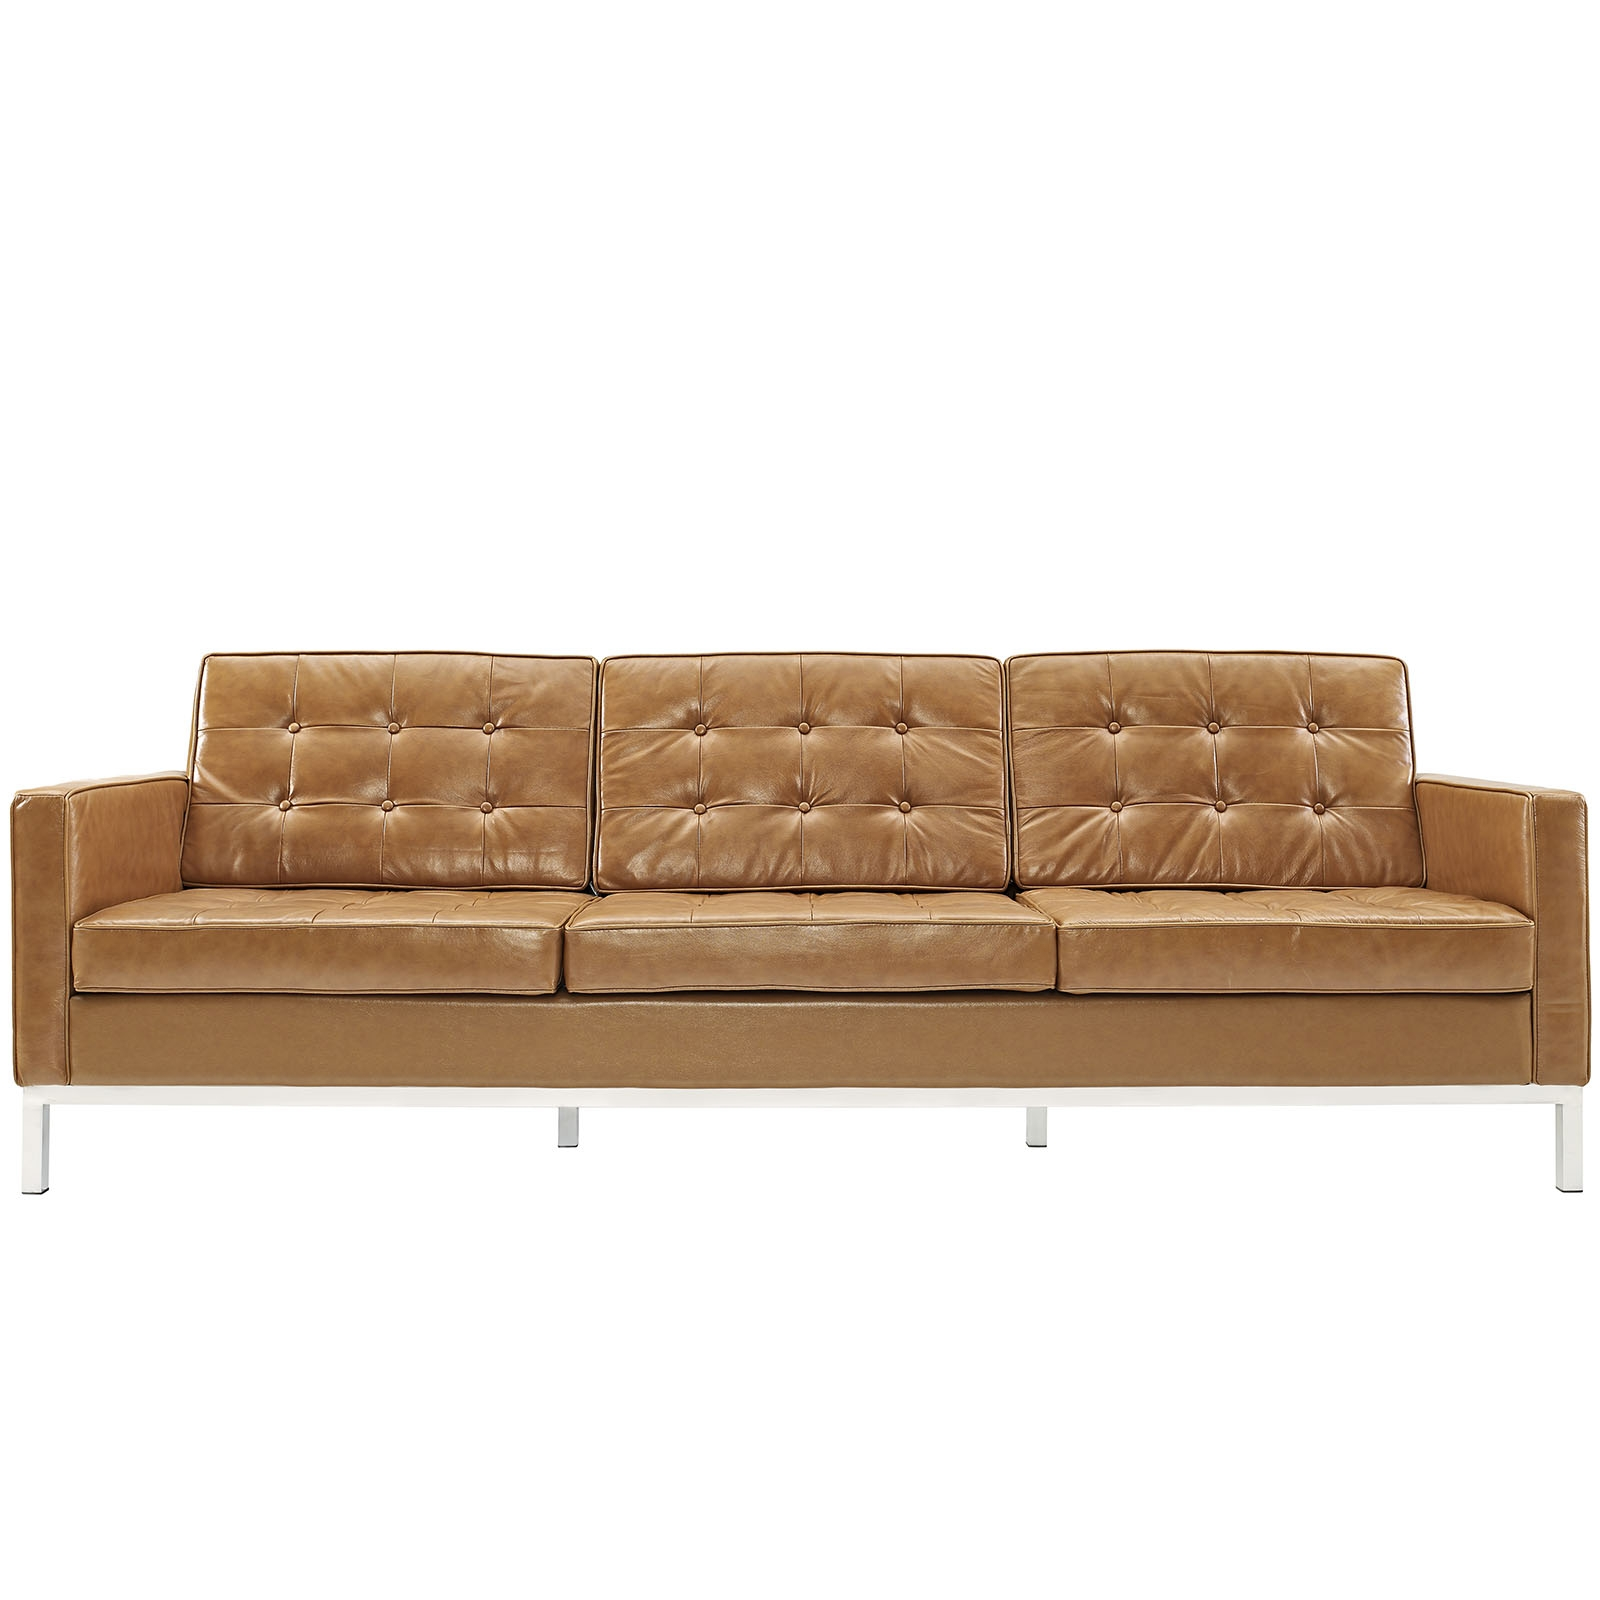 Florence Knoll Style Sofa Couch Leather For Florence Knoll Leather Sofas (Photo 9 of 15)